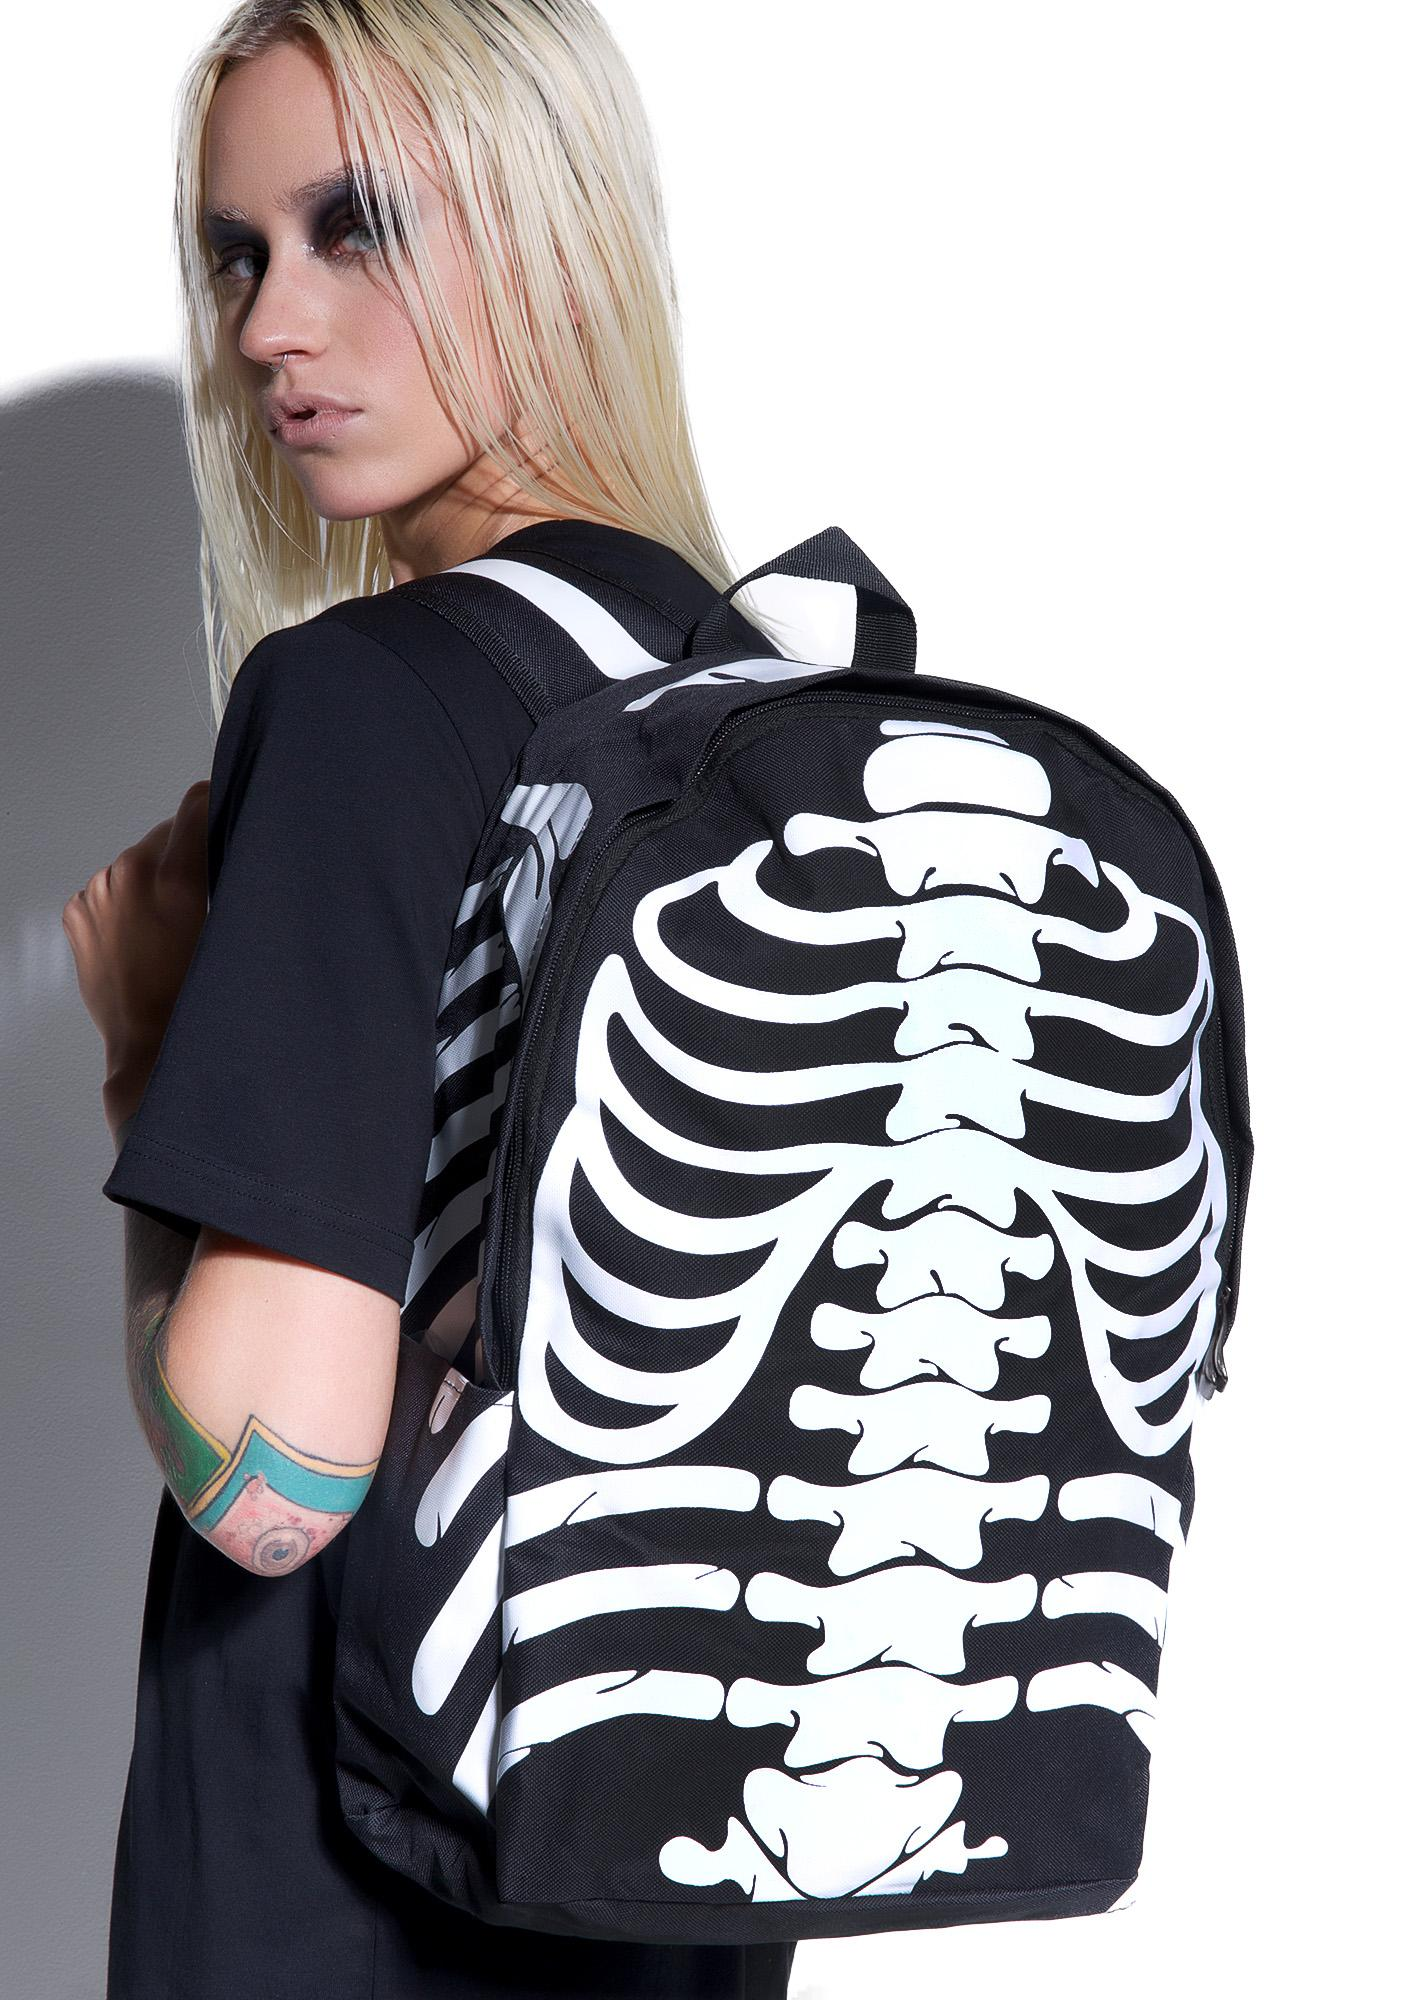 Bare Bones Backpack